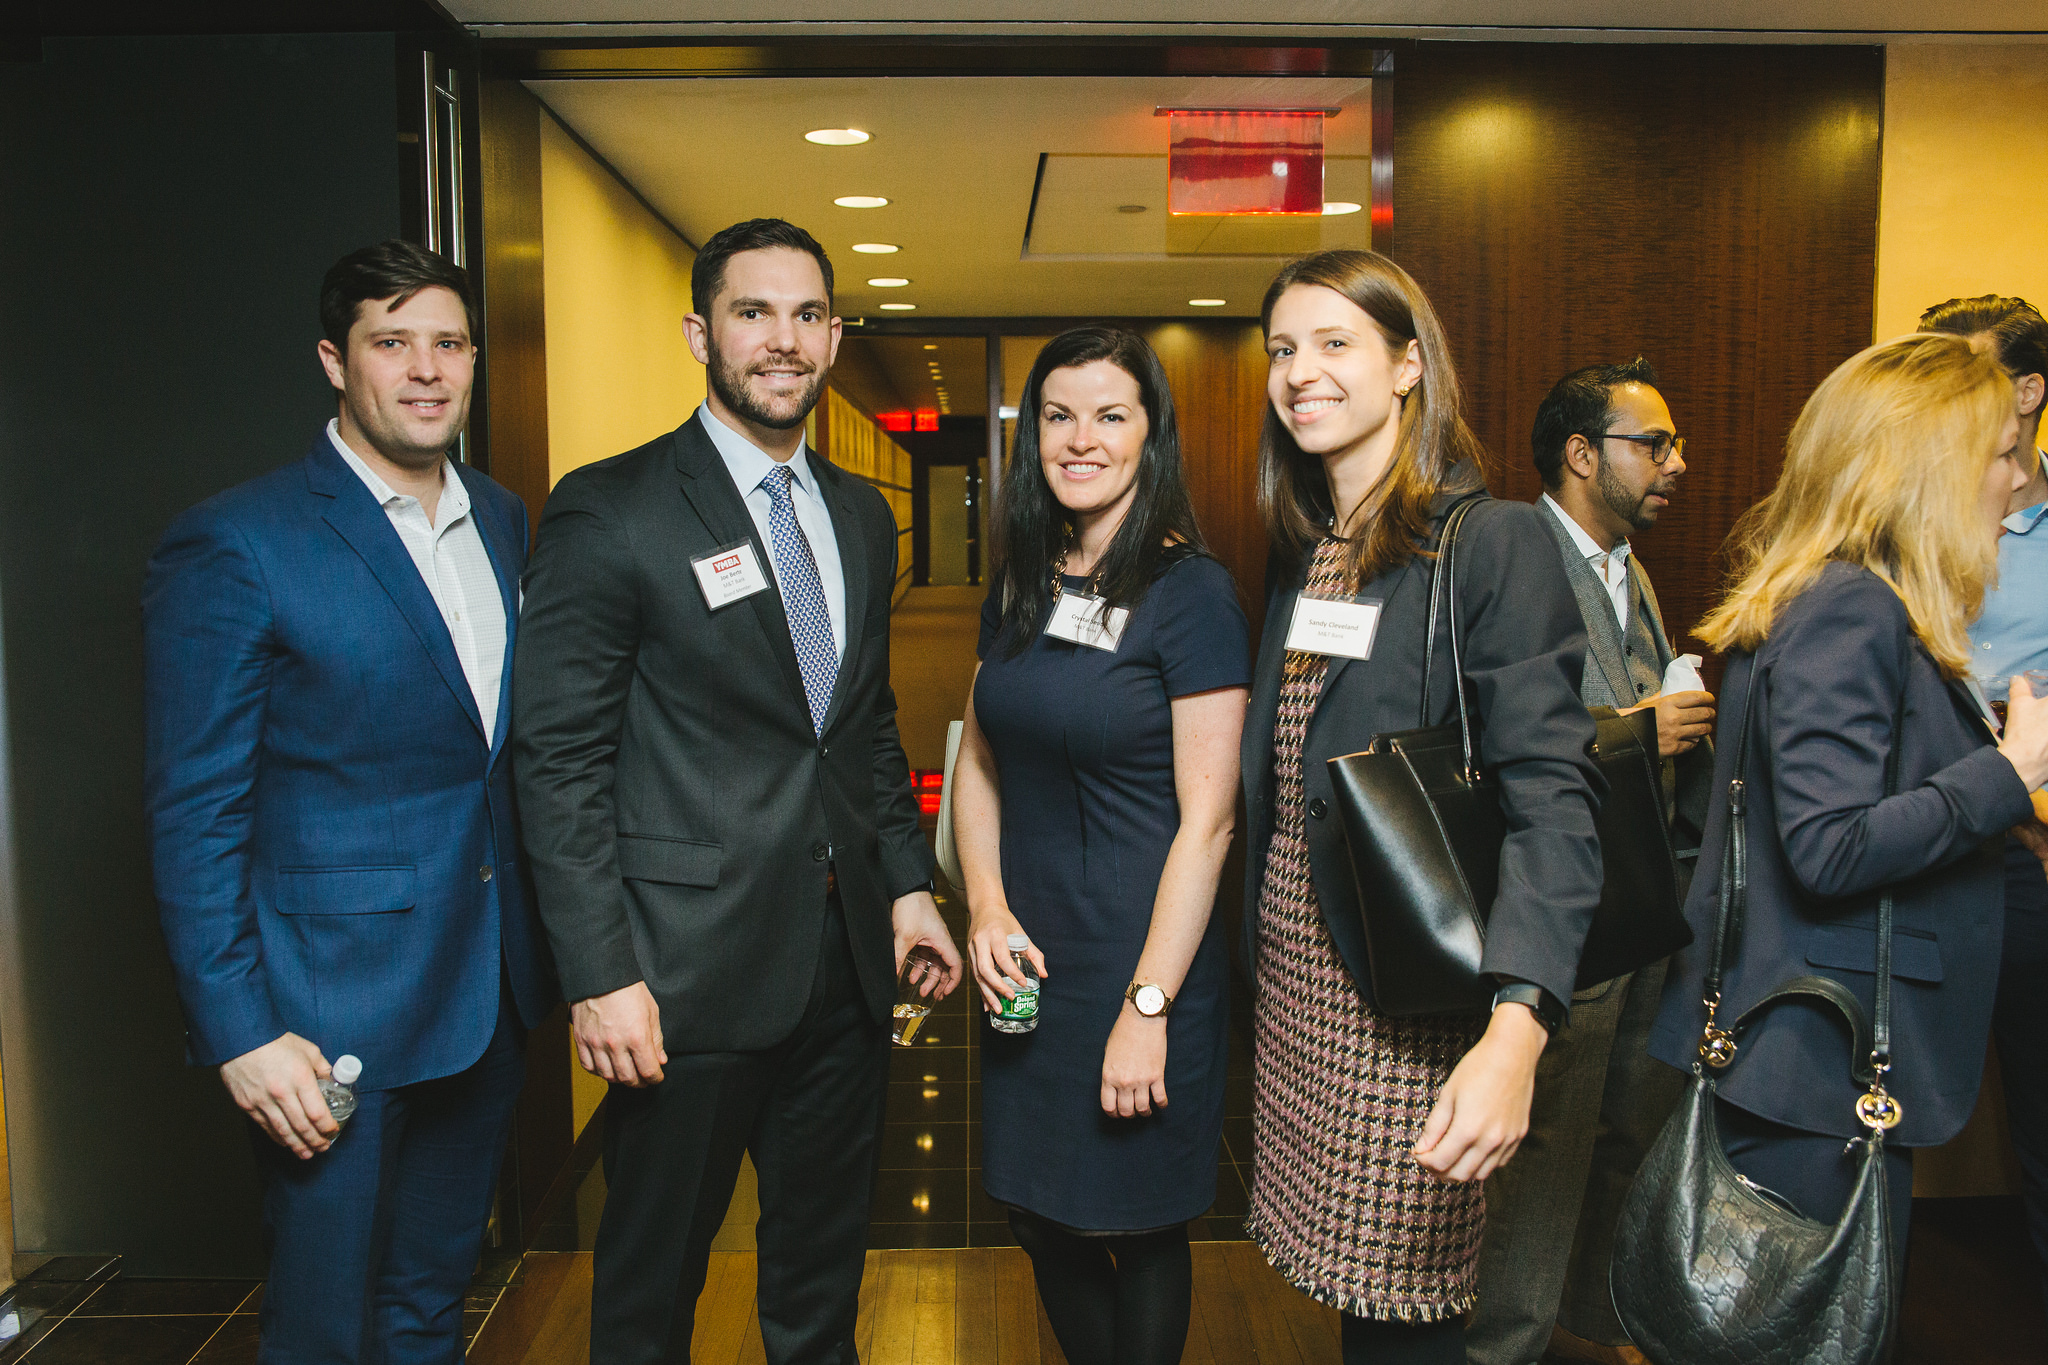 Real Estate Roundtables and Social Hour - Wednesday, January 24, 2018 - Herrick, Feinstein LLP